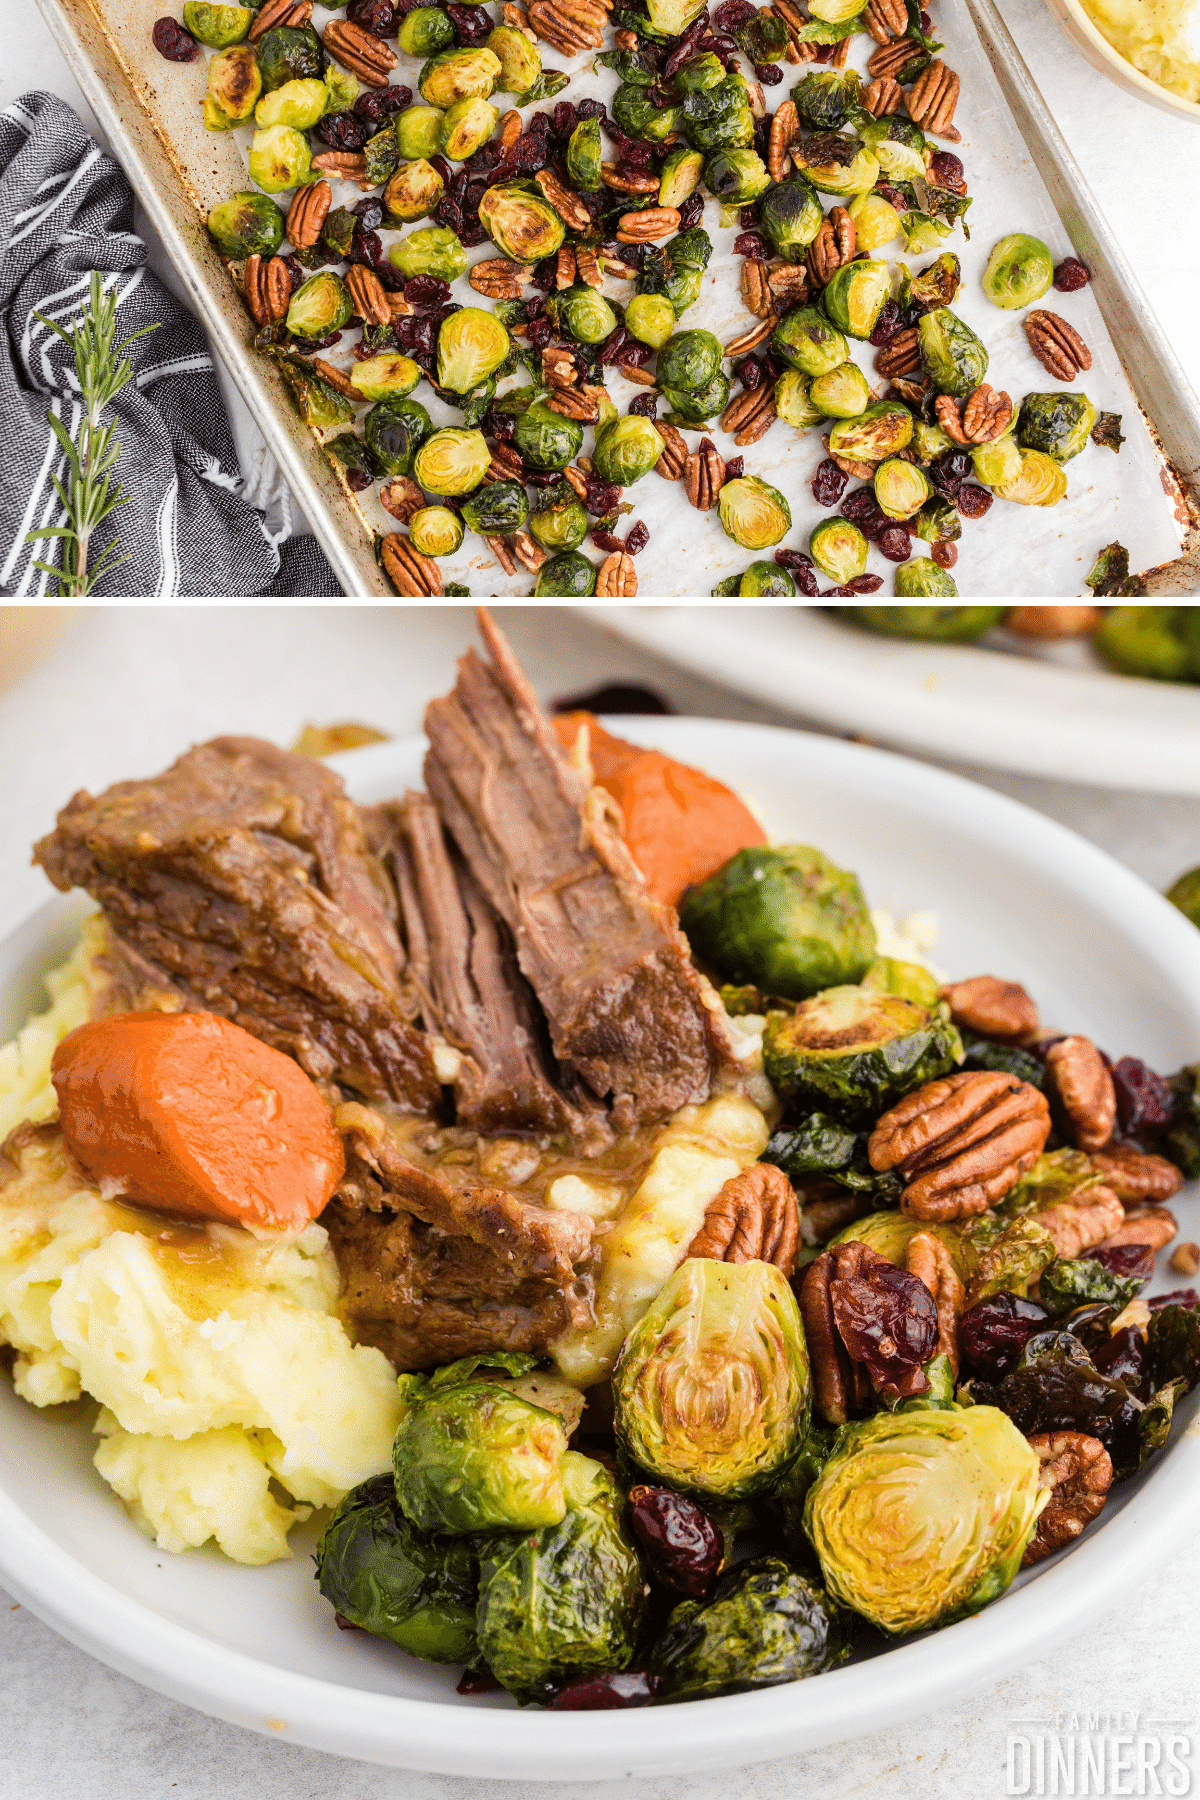 plate with brussels sprouts, roast beef, carrots and mashed potatoes. Perfectly roasted.